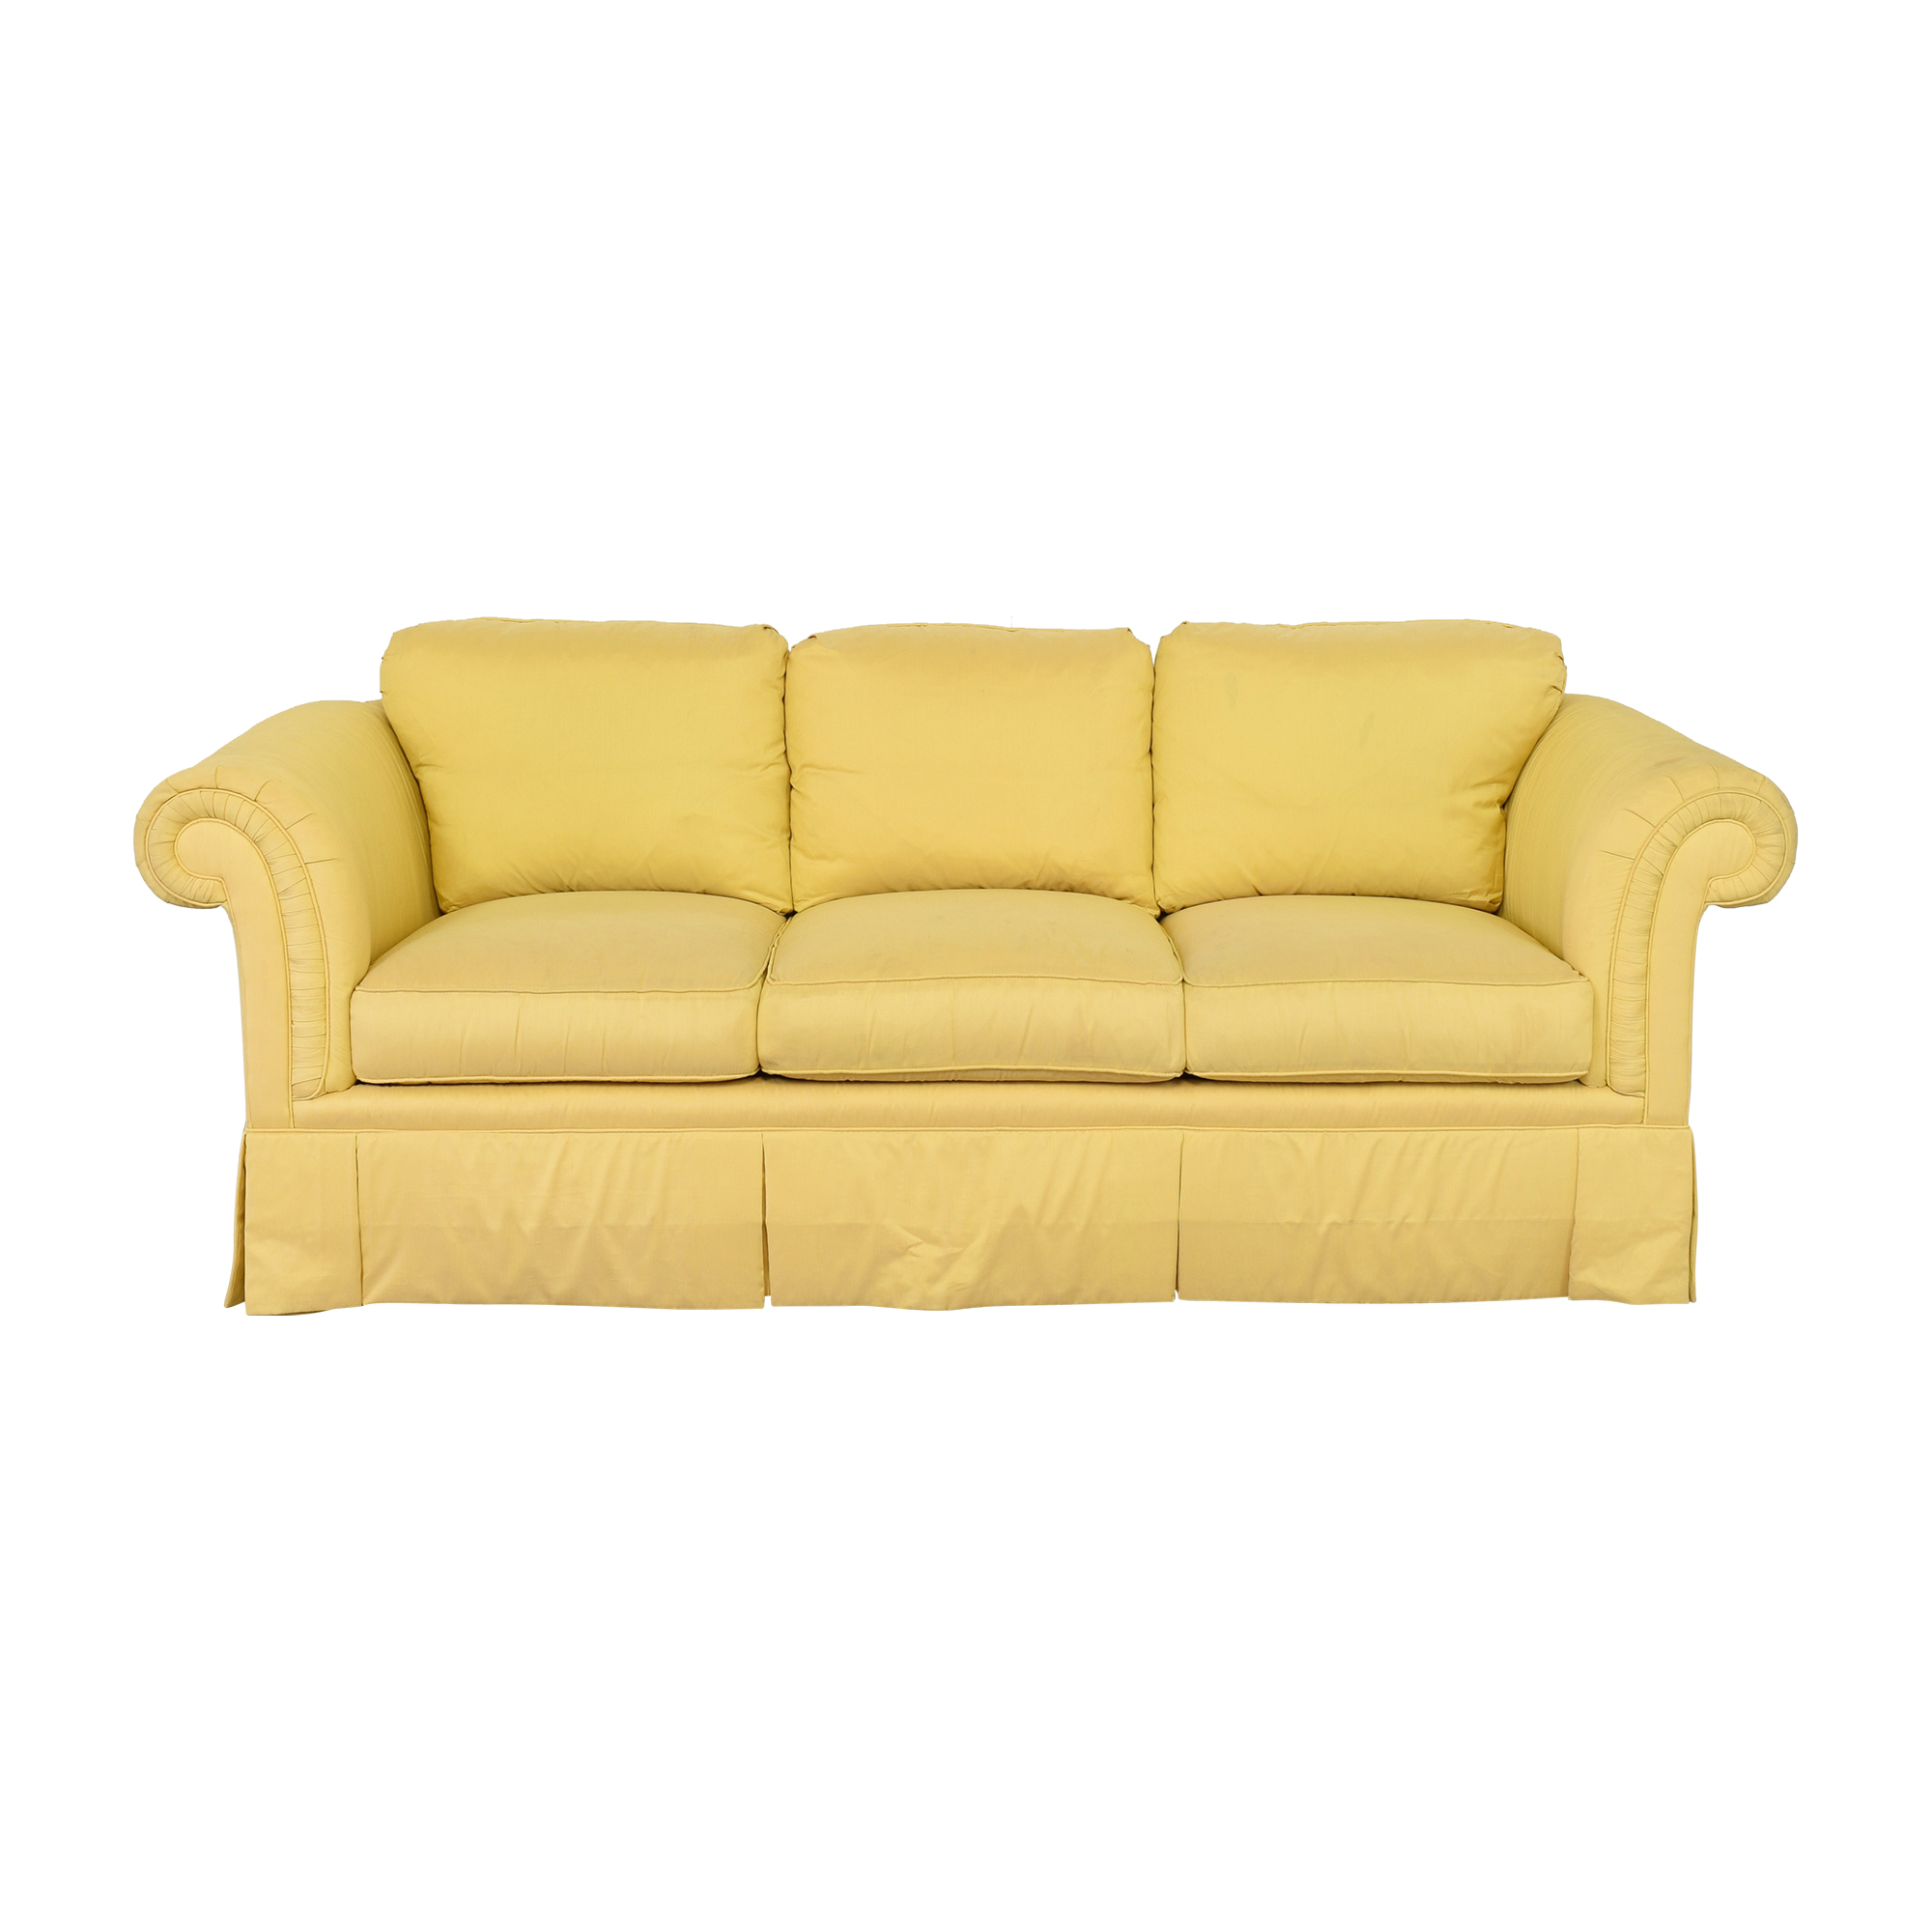 Drexel Heritage Three Cushion Sofa Drexel Heritage